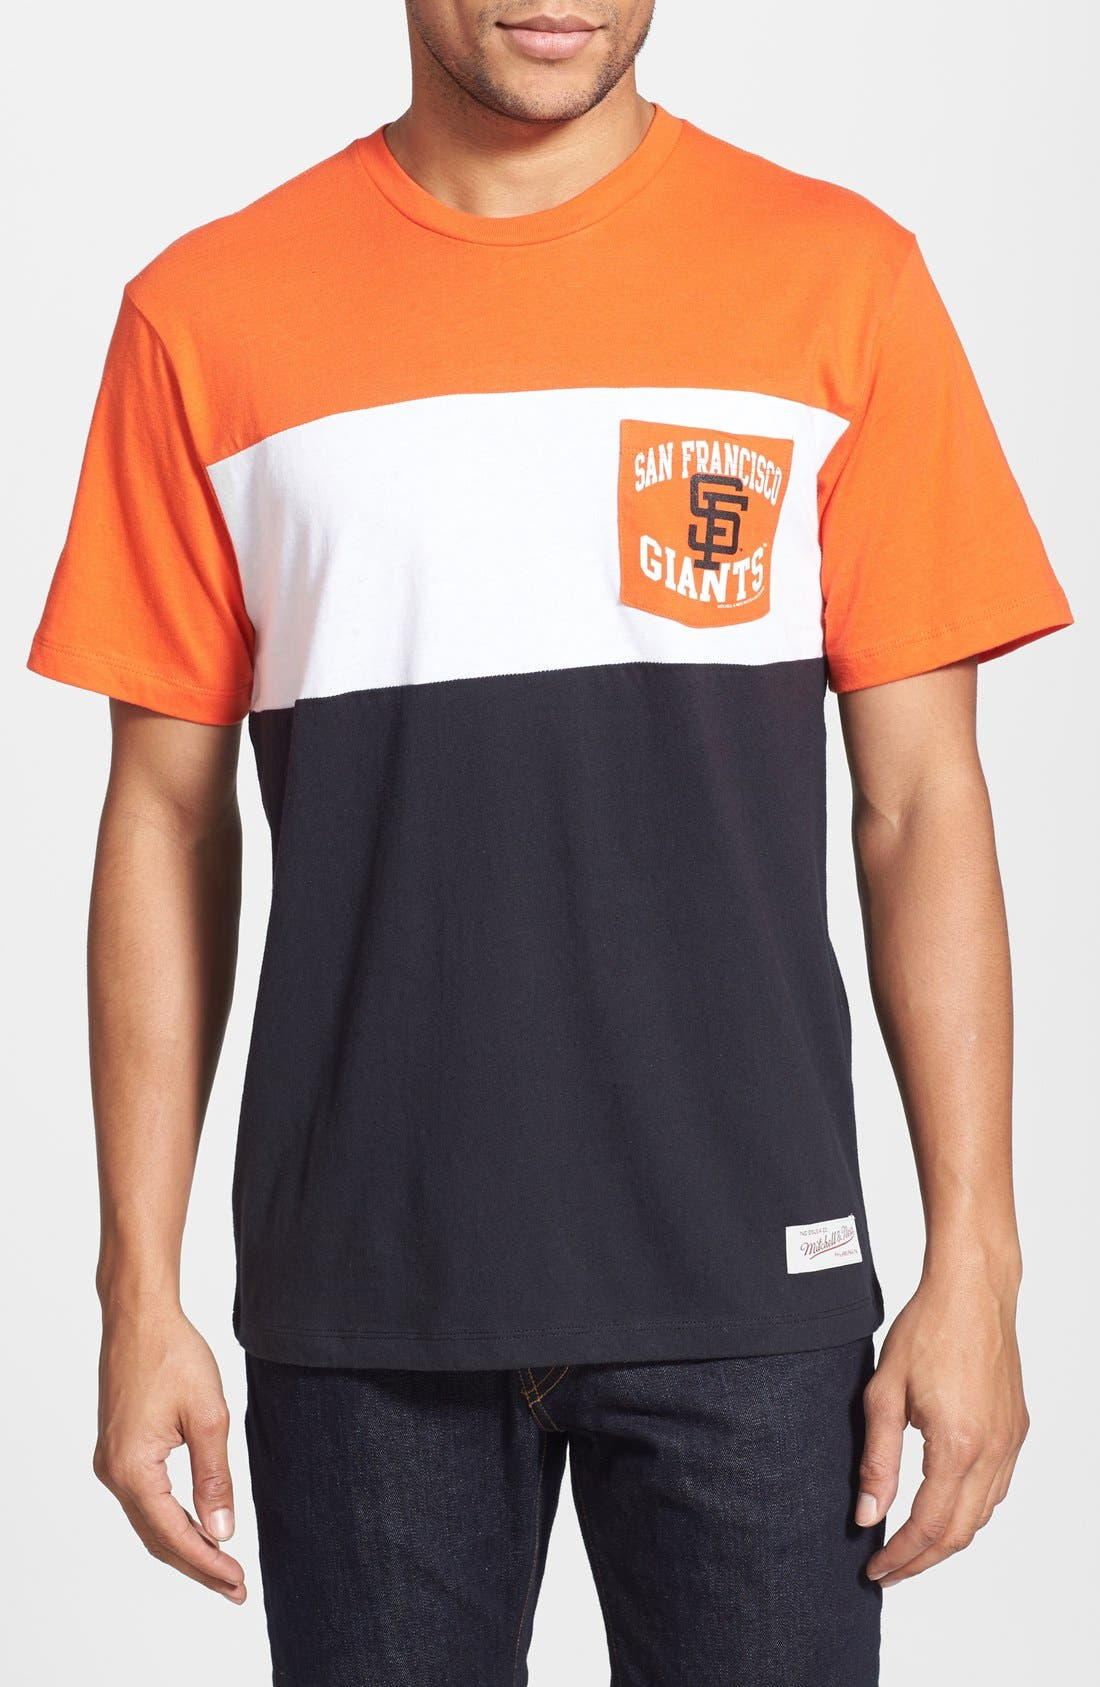 Alternate Image 1 Selected - Mitchell & Ness 'San Francisco Giants - Margin of Victory' Tailored Fit T-Shirt